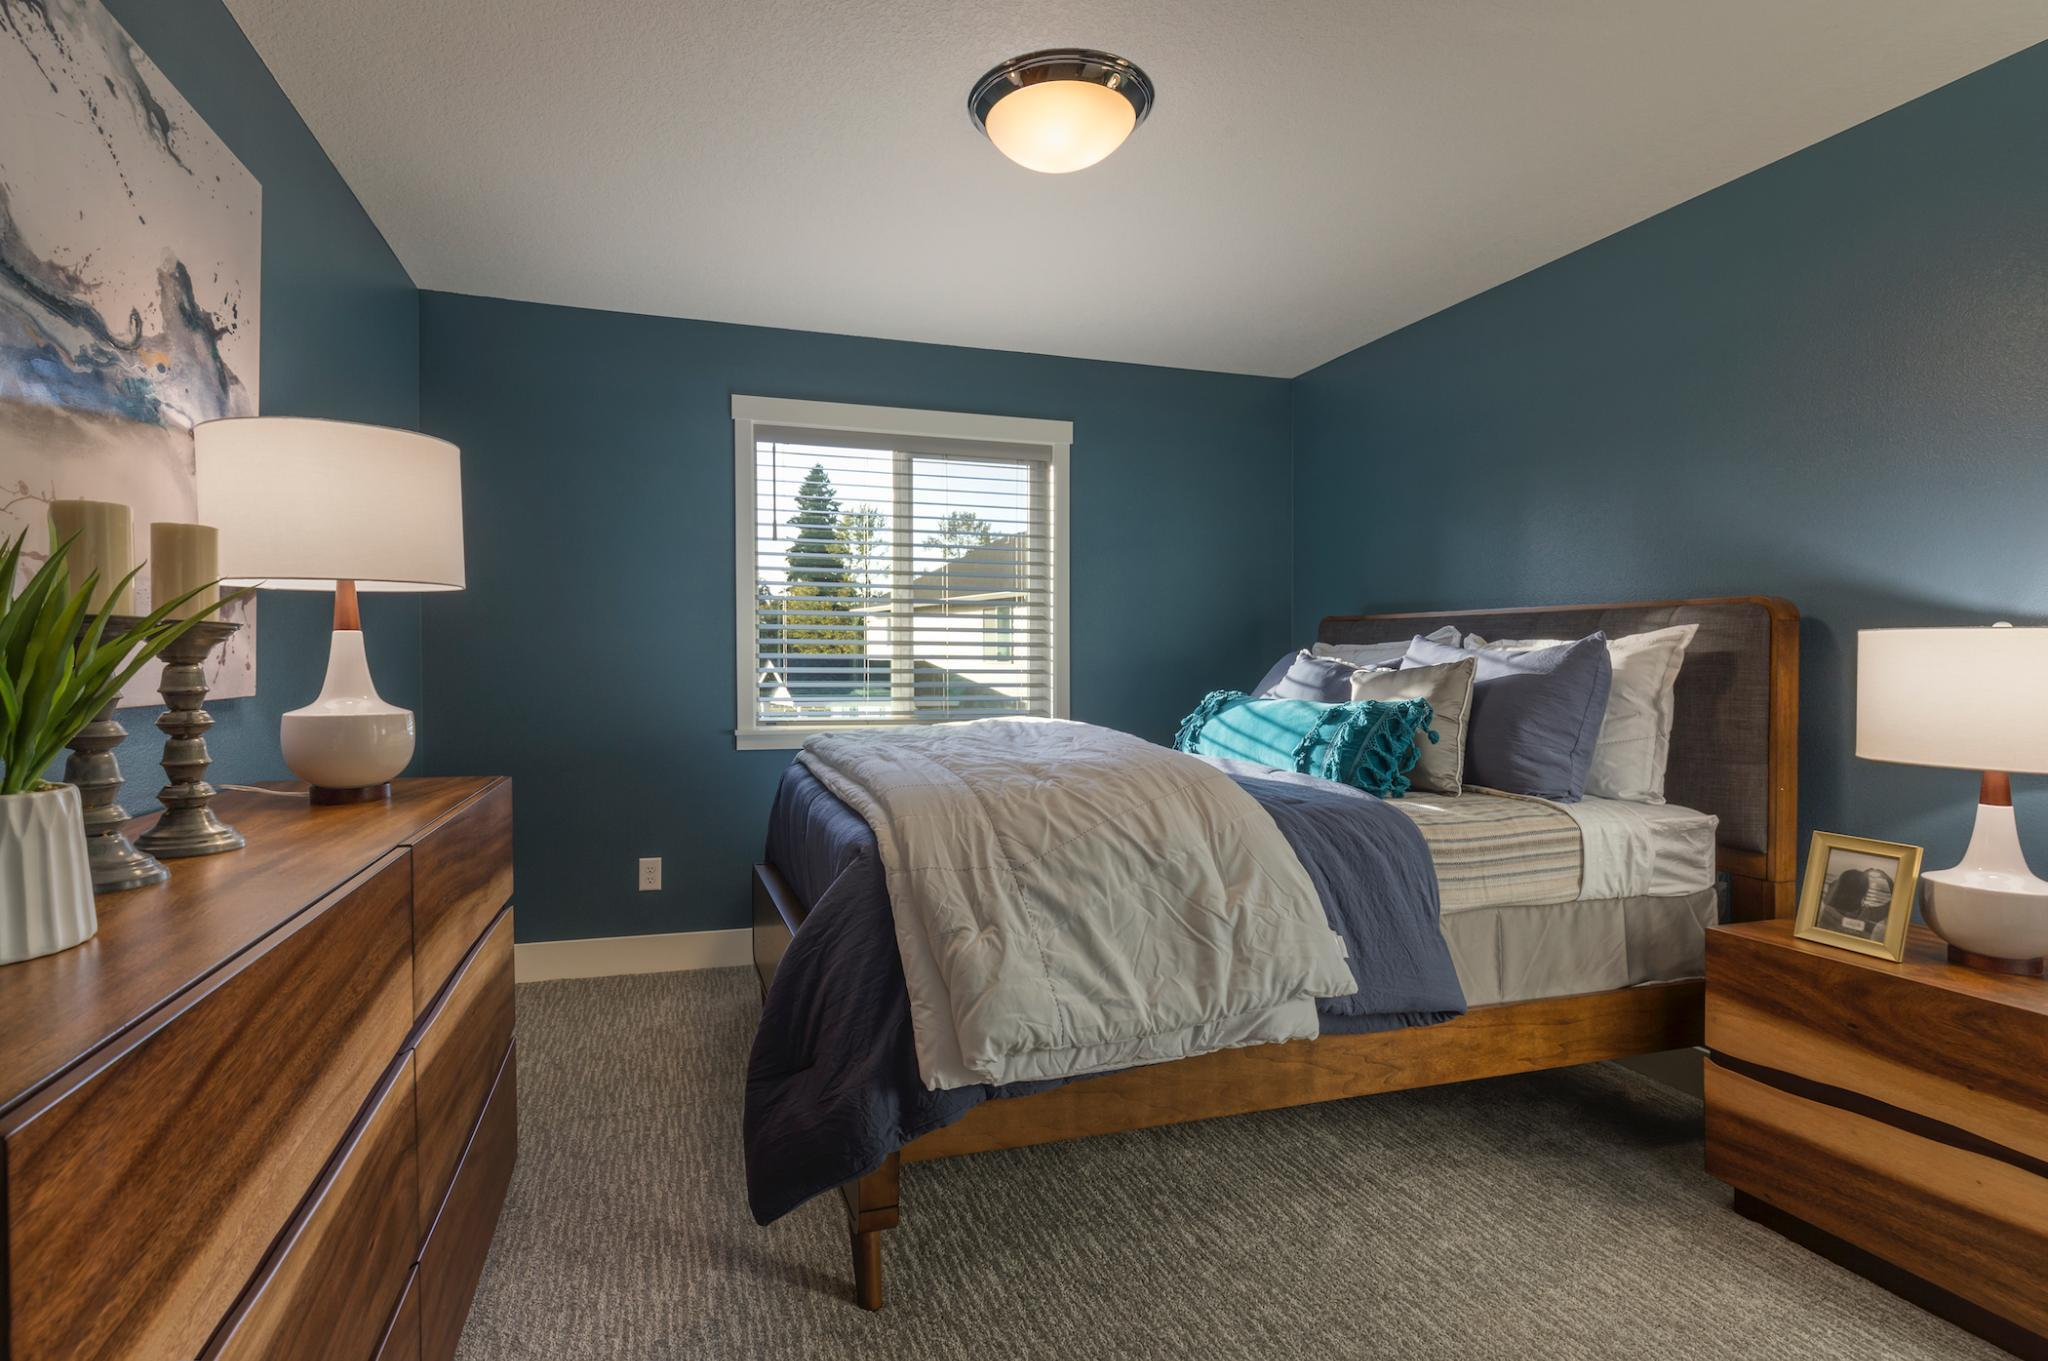 Bedroom featured in the Everson By New Tradition Homes in Richland, WA